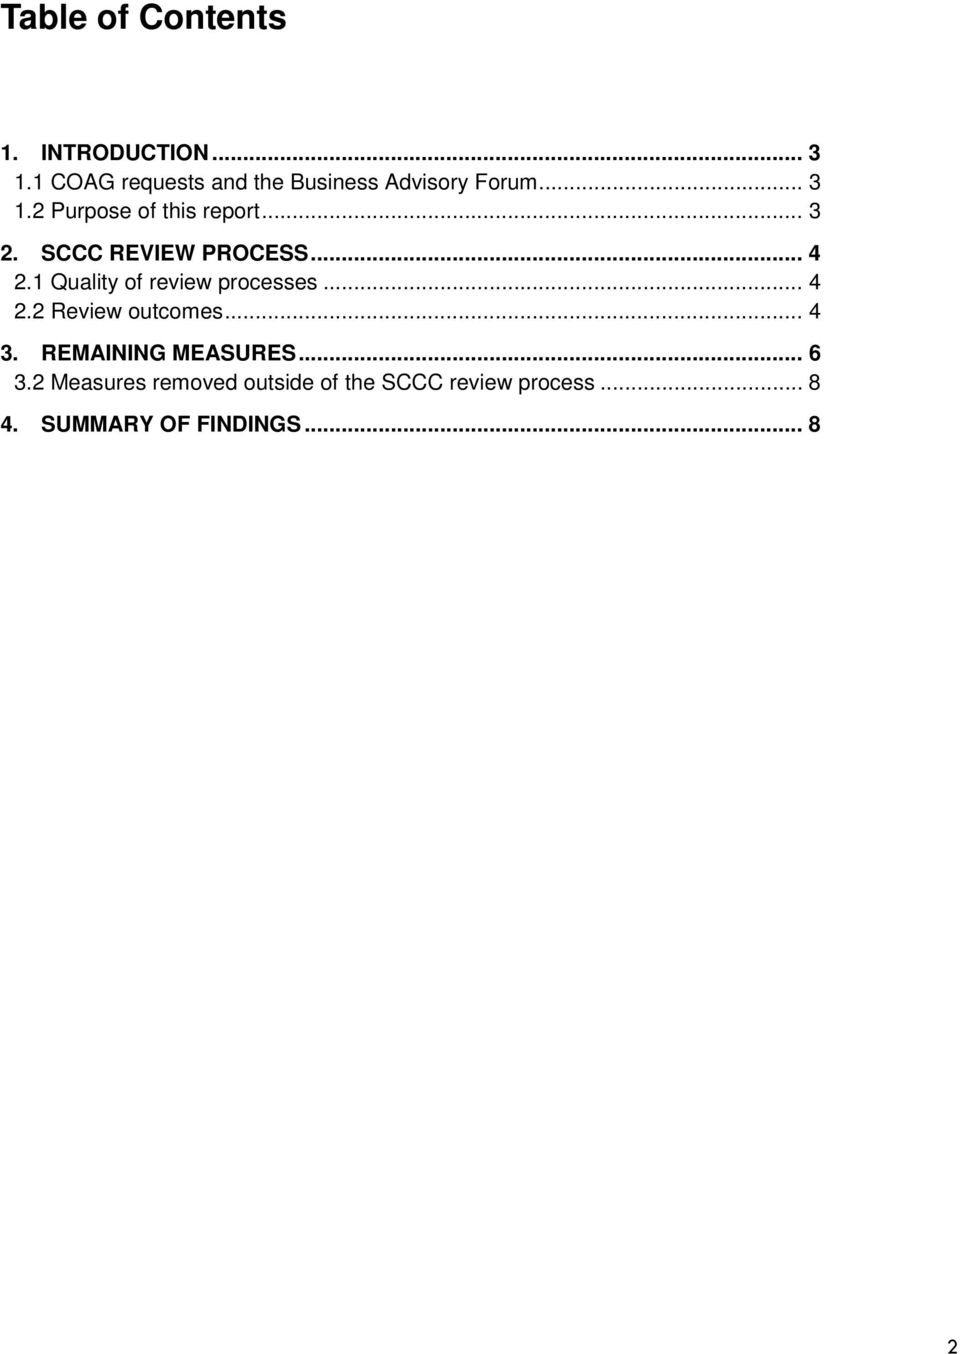 .. 3 2. SCCC REVIEW PROCESS... 4 2.1 Quality of review processes... 4 2.2 Review outcomes.